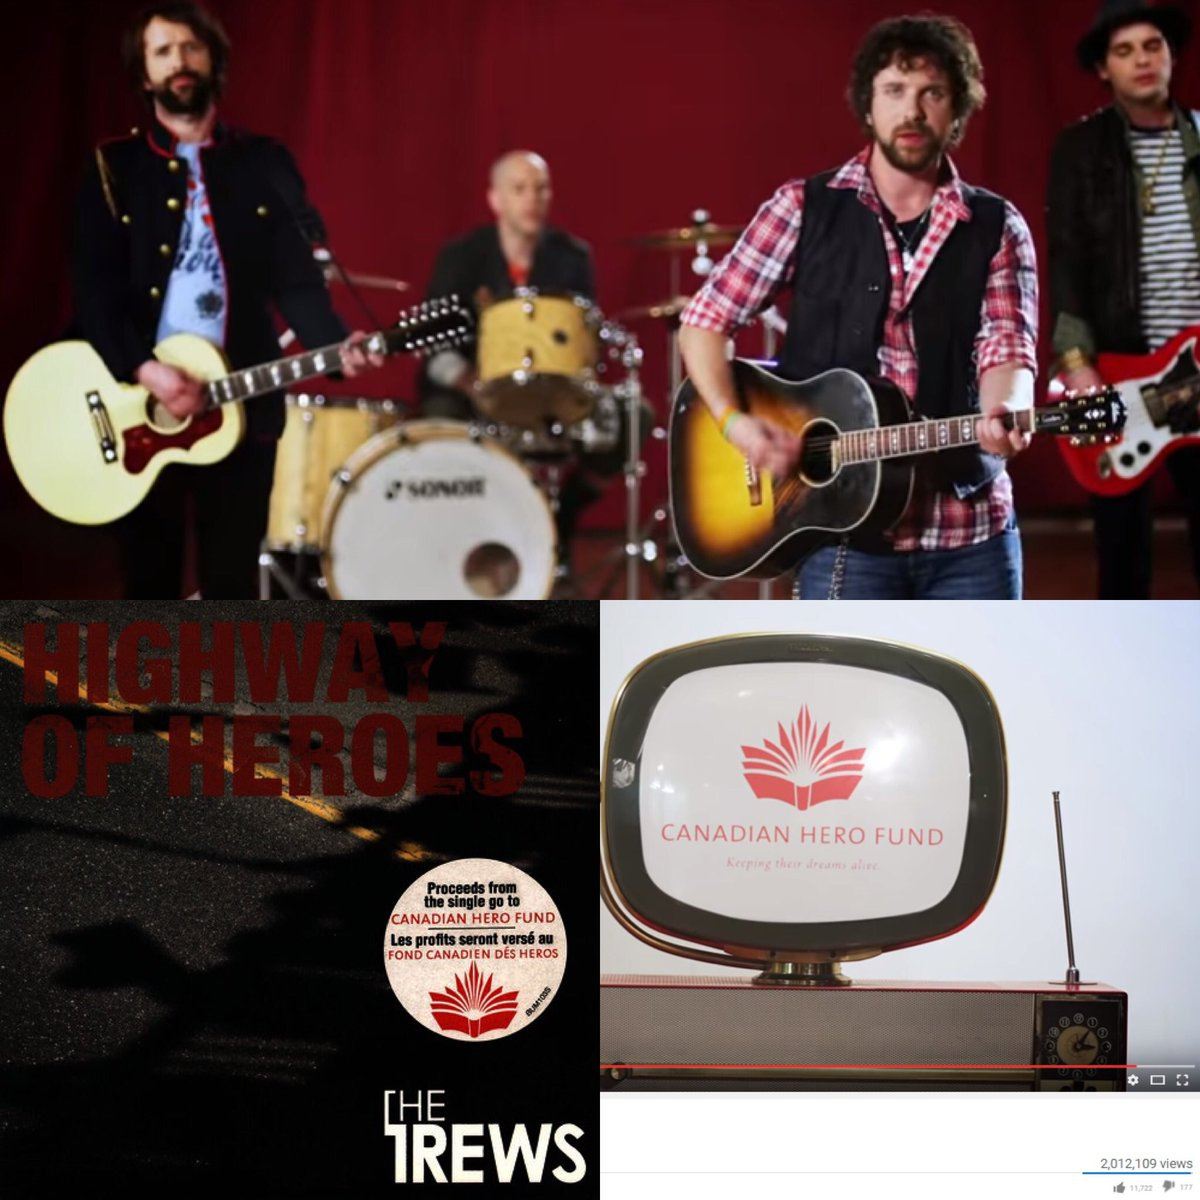 Incredible! Over 2M views of Highway of Heroes by @thetrews in support of @herofund #sot #canada #music #cdnpoli https://t.co/qqdMD7C77l